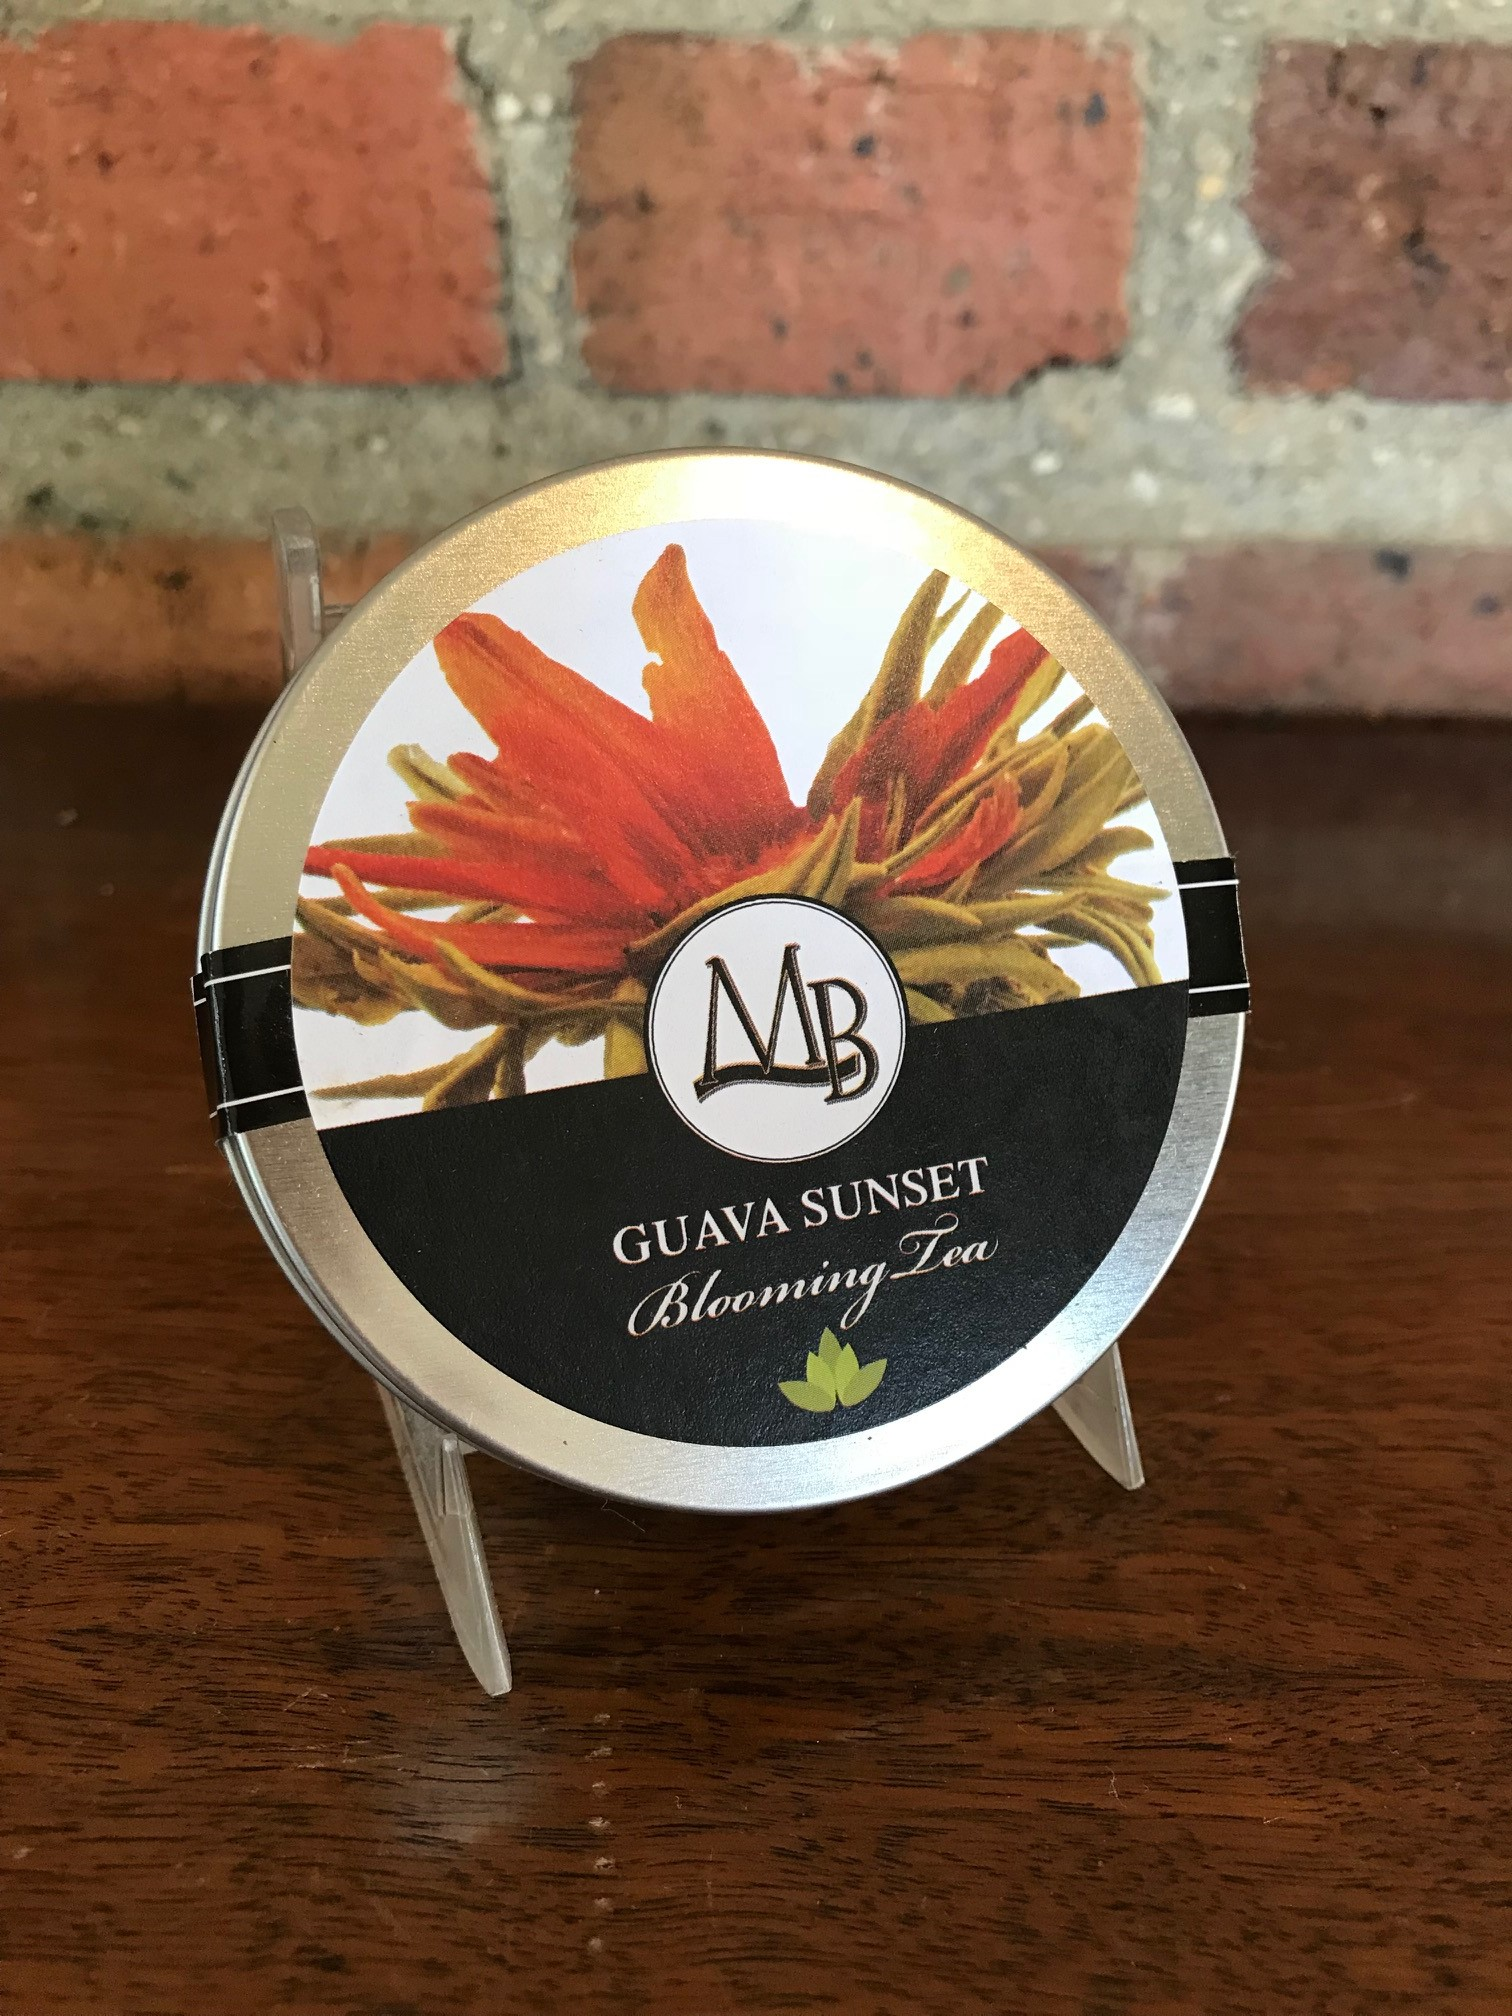 Blooming Tea: Guava Sunset